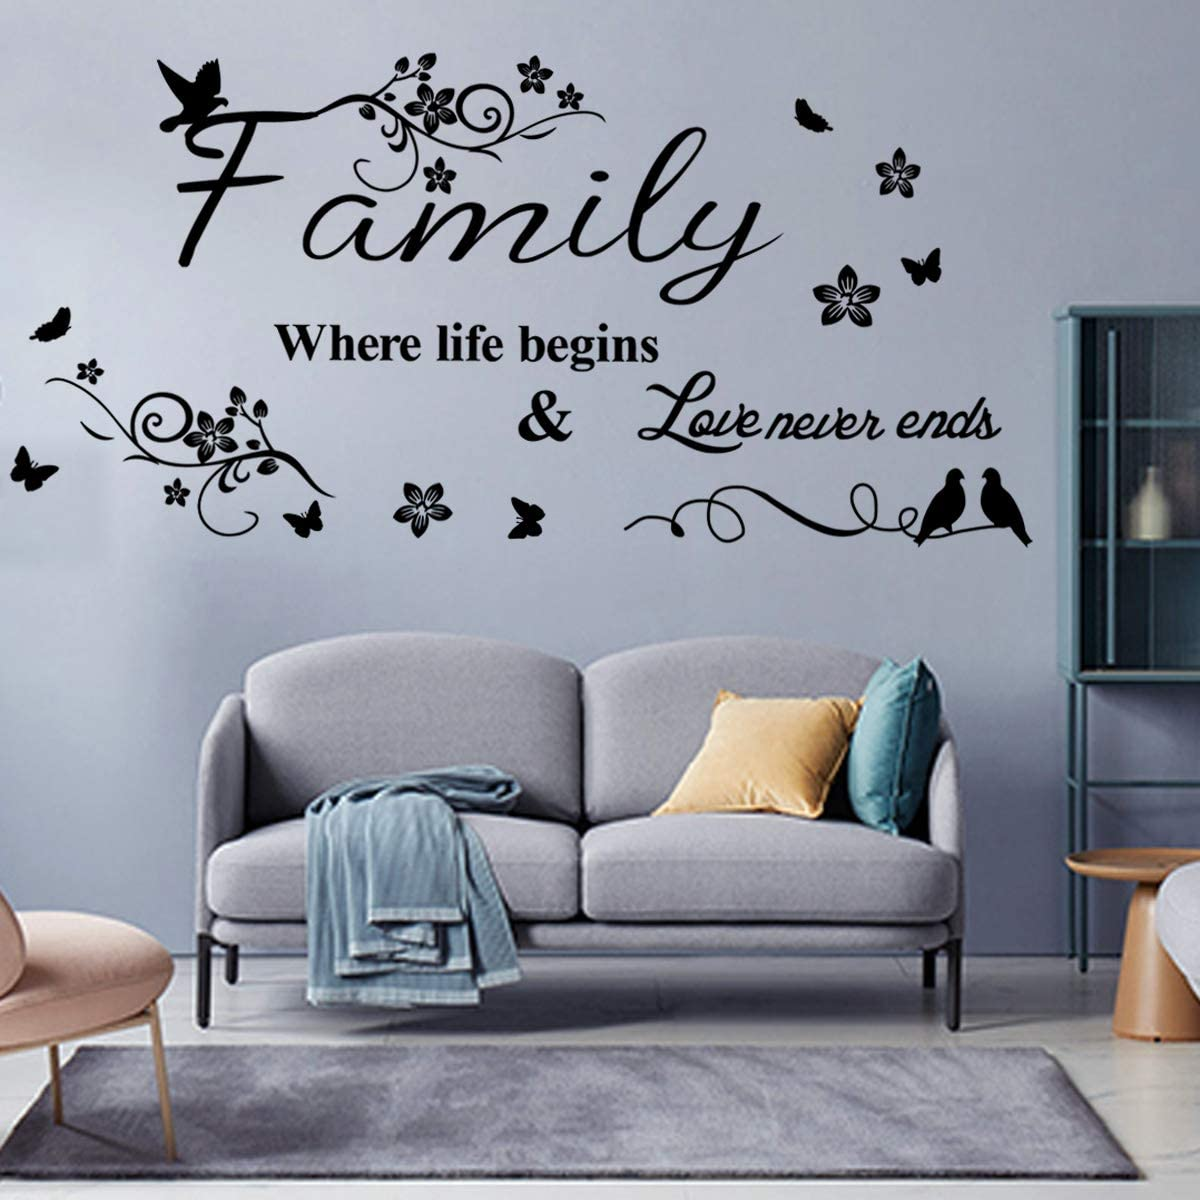 Black Large Wall Decor Wall Stickers for Living Room Bedroom Kitchen Quote- Family Where Life Begins & Love Never Ends Quote Removable Vinyl Home Art Decals Murals CASADECOR.